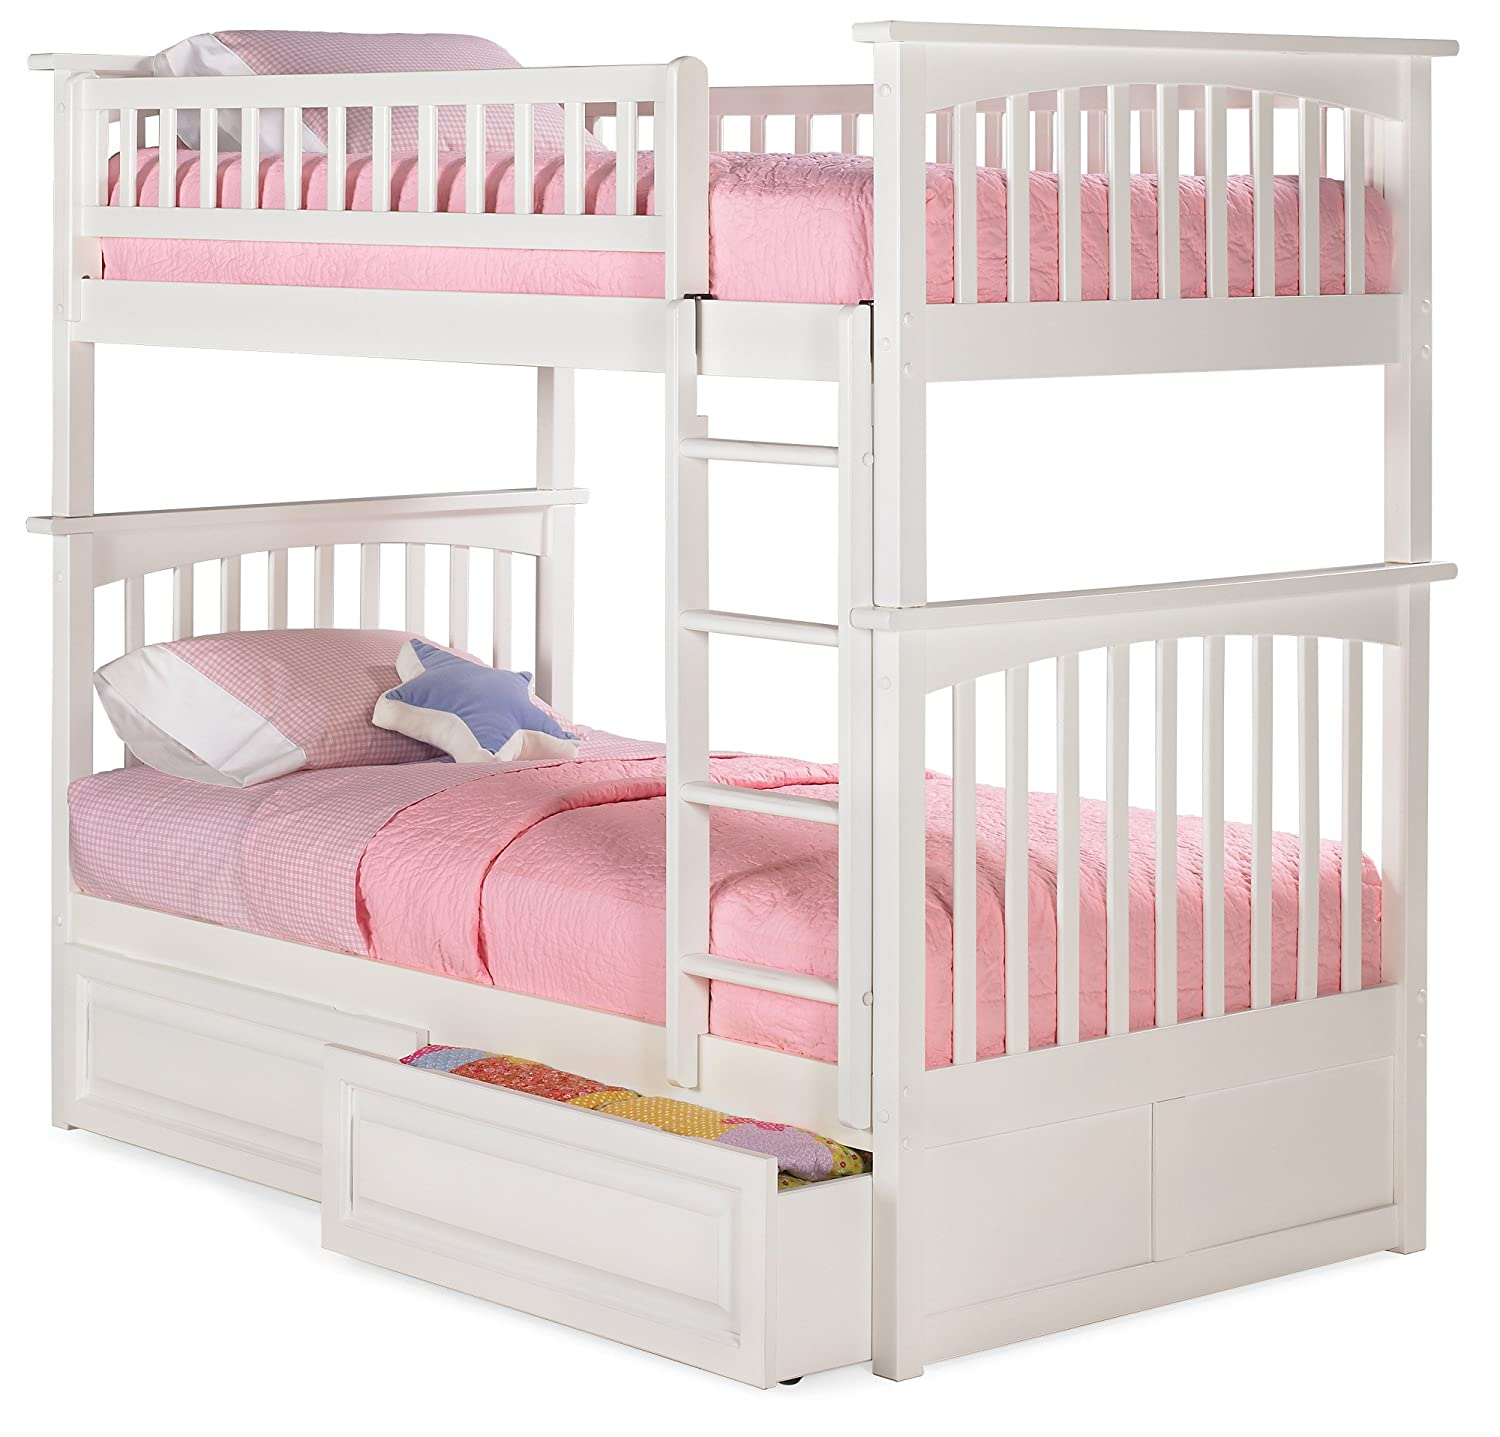 Bunk Bed with 2 Raised Panel Bed Drawers, Twin Over Twin, White